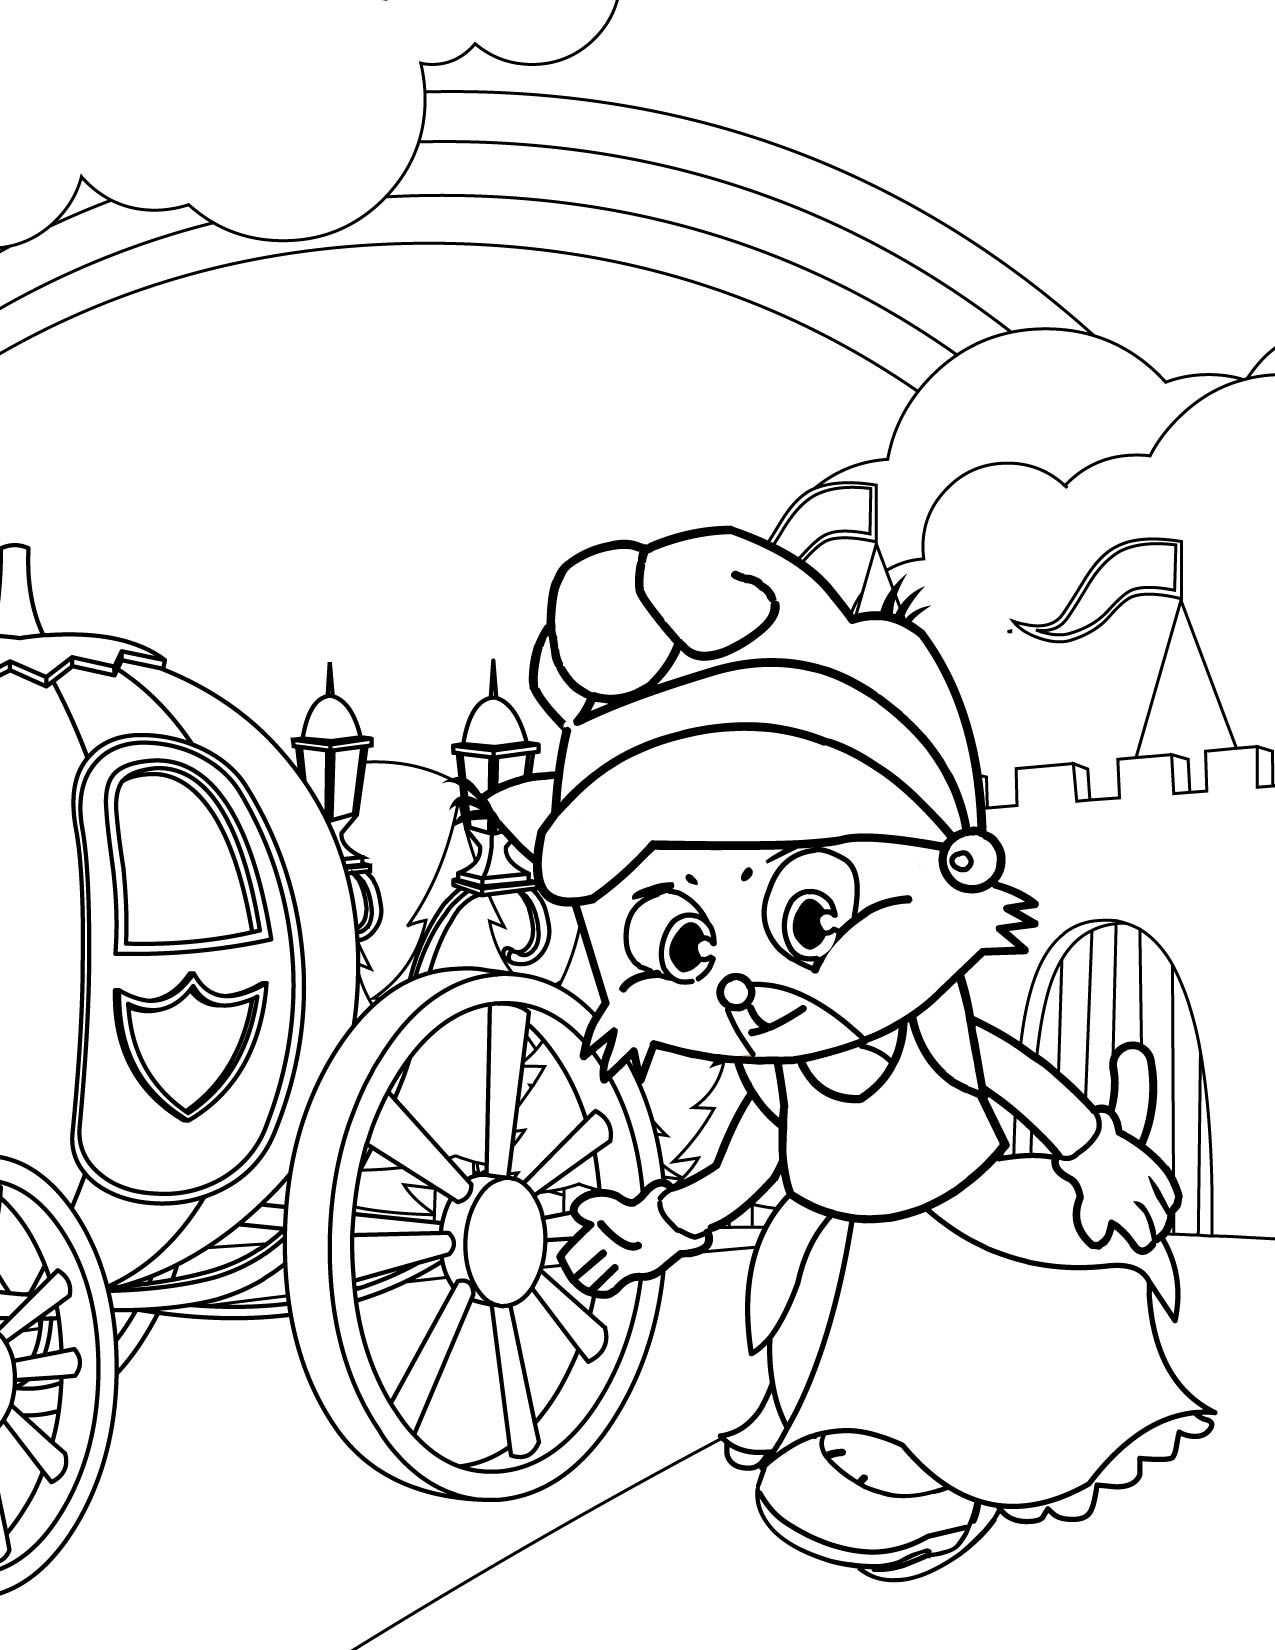 Cinderella Fairy Tale Pages Coloring Pages